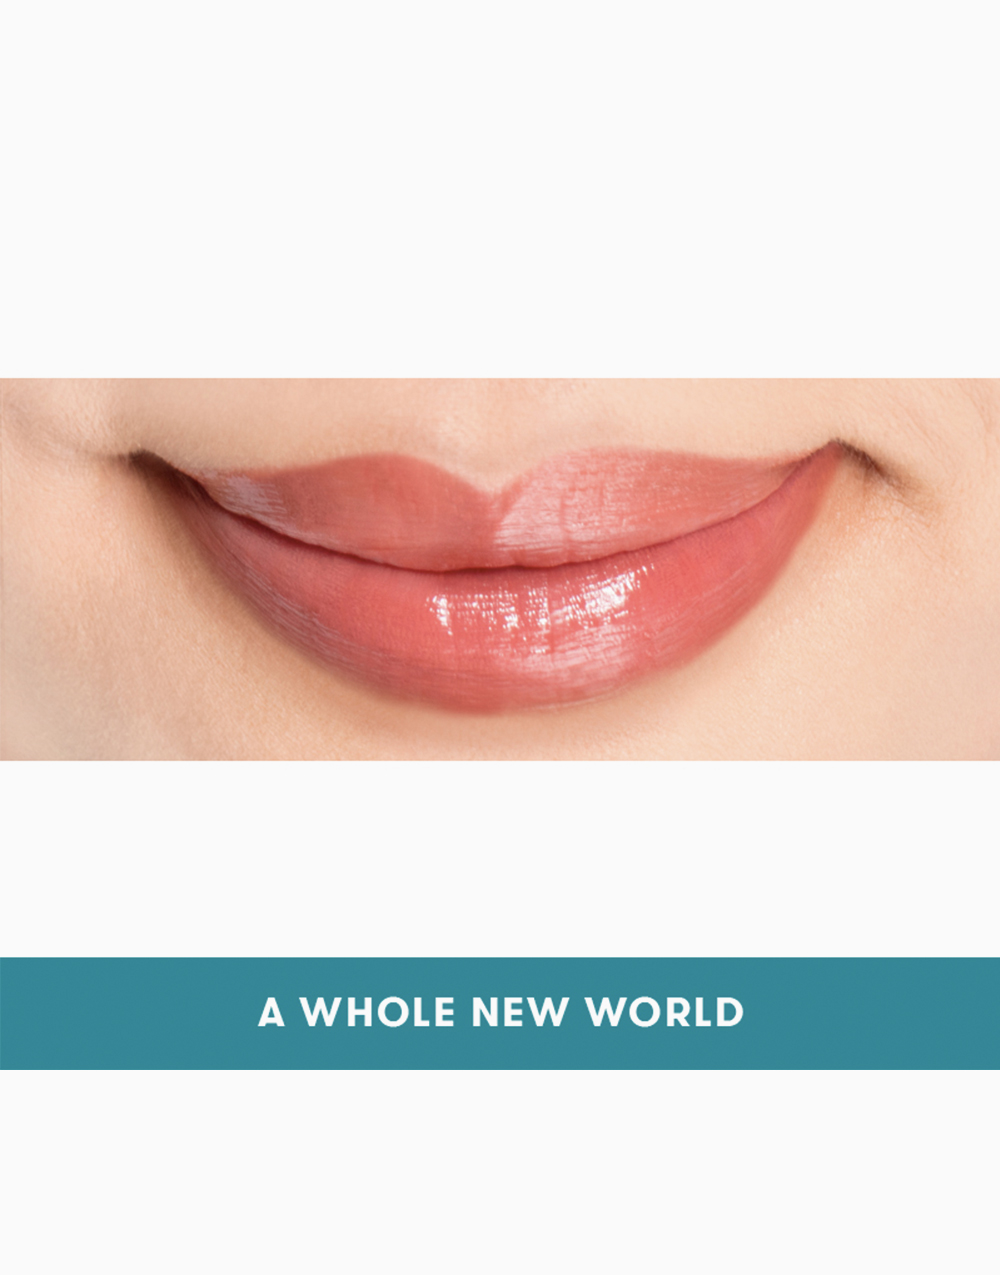 Happy Skin x Disney Cooling Lip Gloss by Happy Skin | A Whole New World